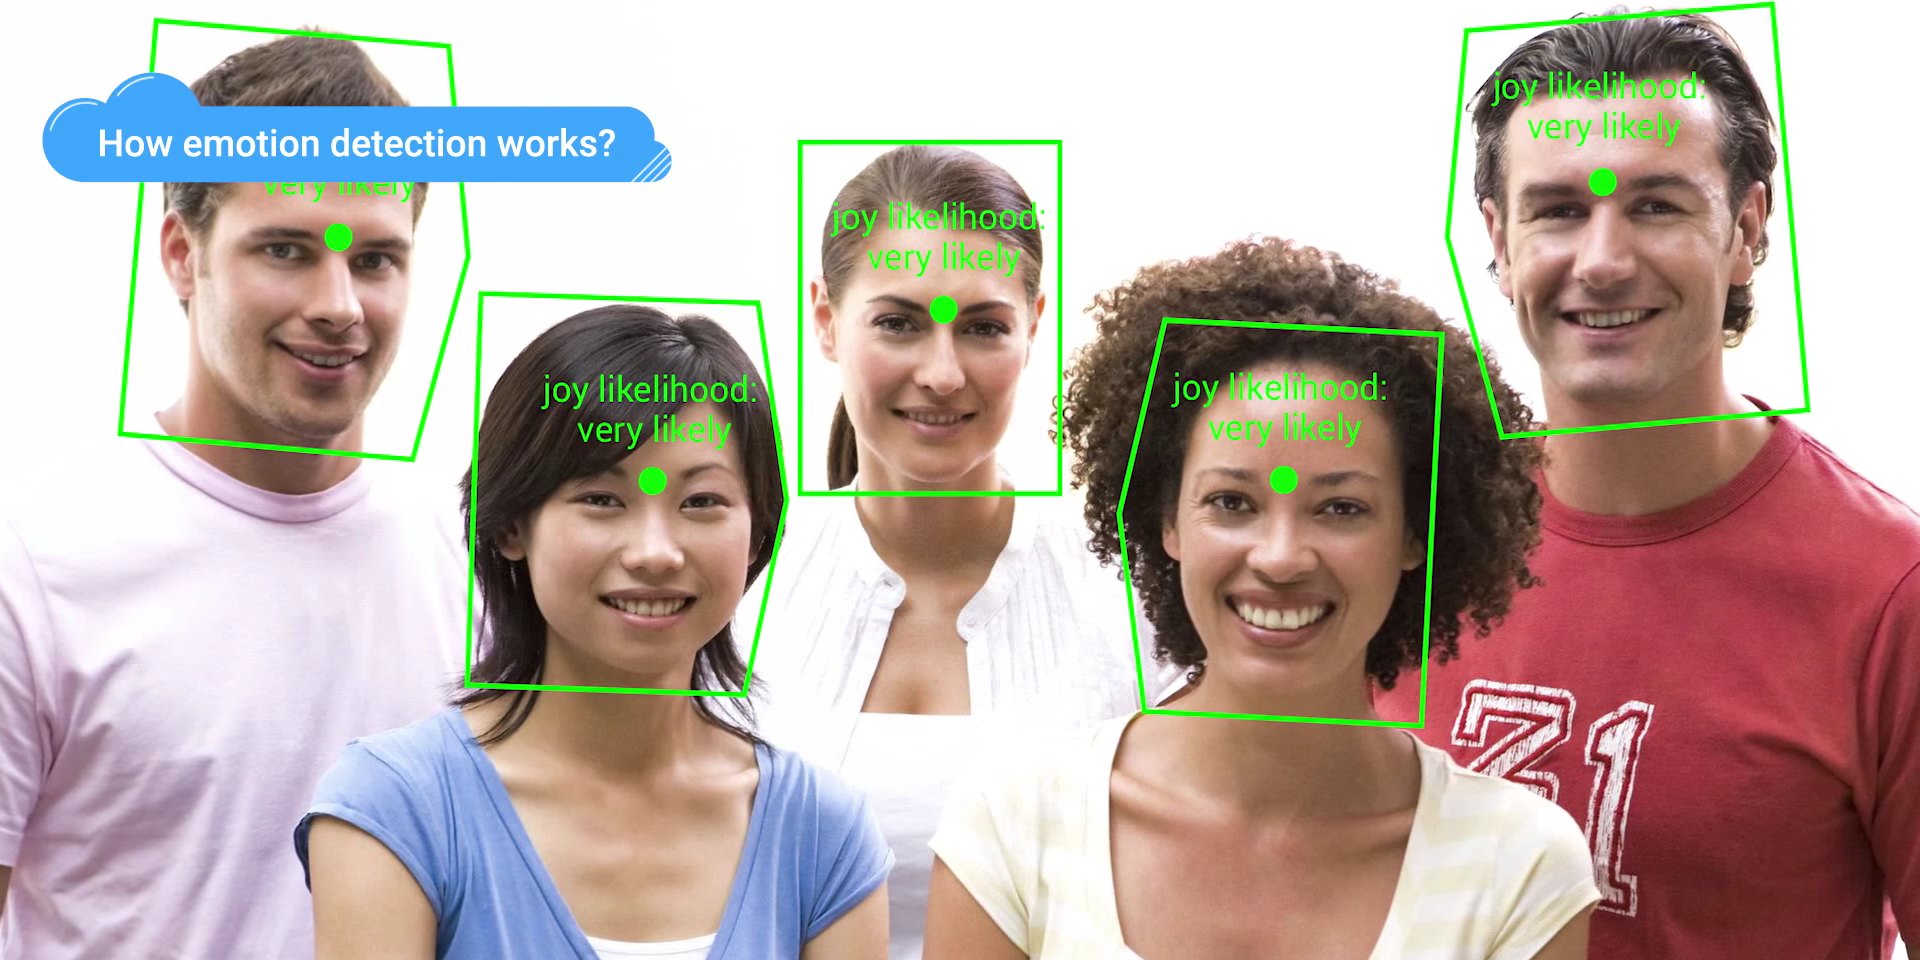 Google Cloud Vision offers facial recognition, among other features, via a REST API